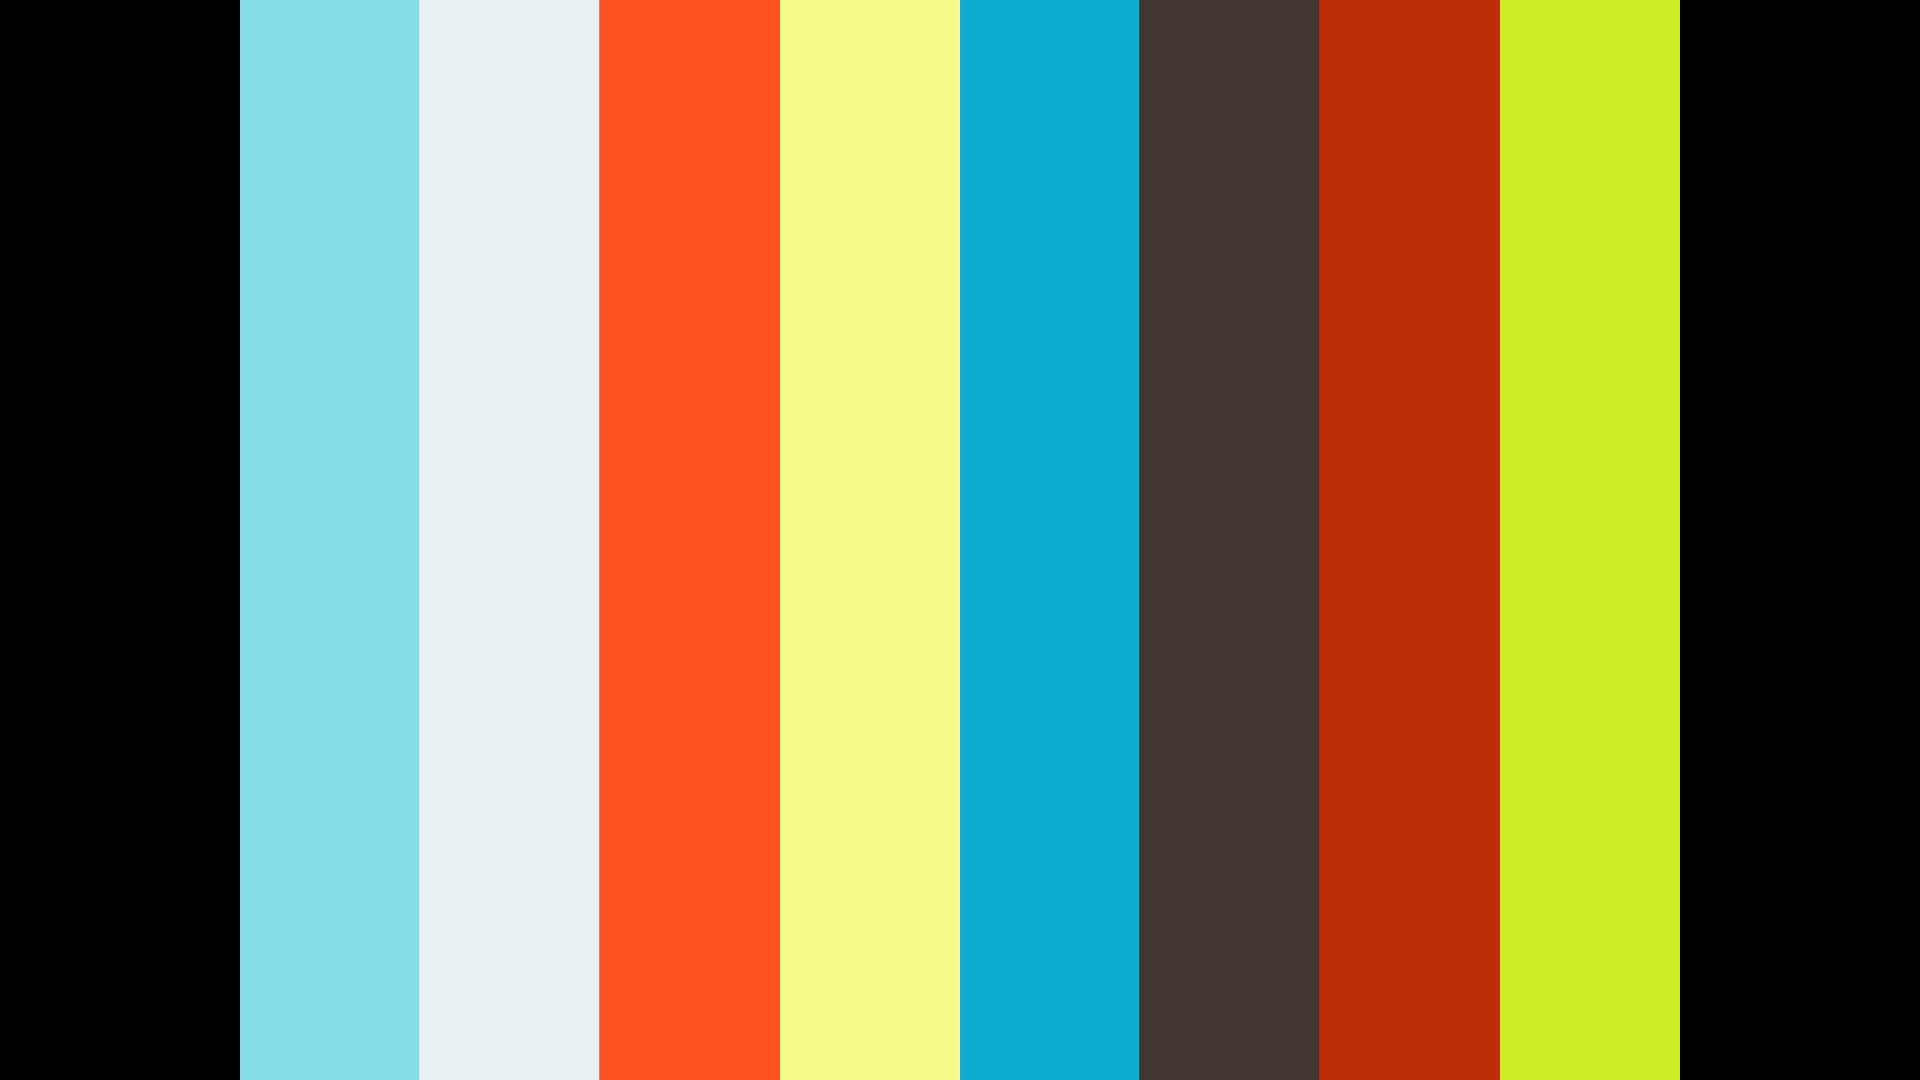 Talk by Heba Y. Amin (Panel III)